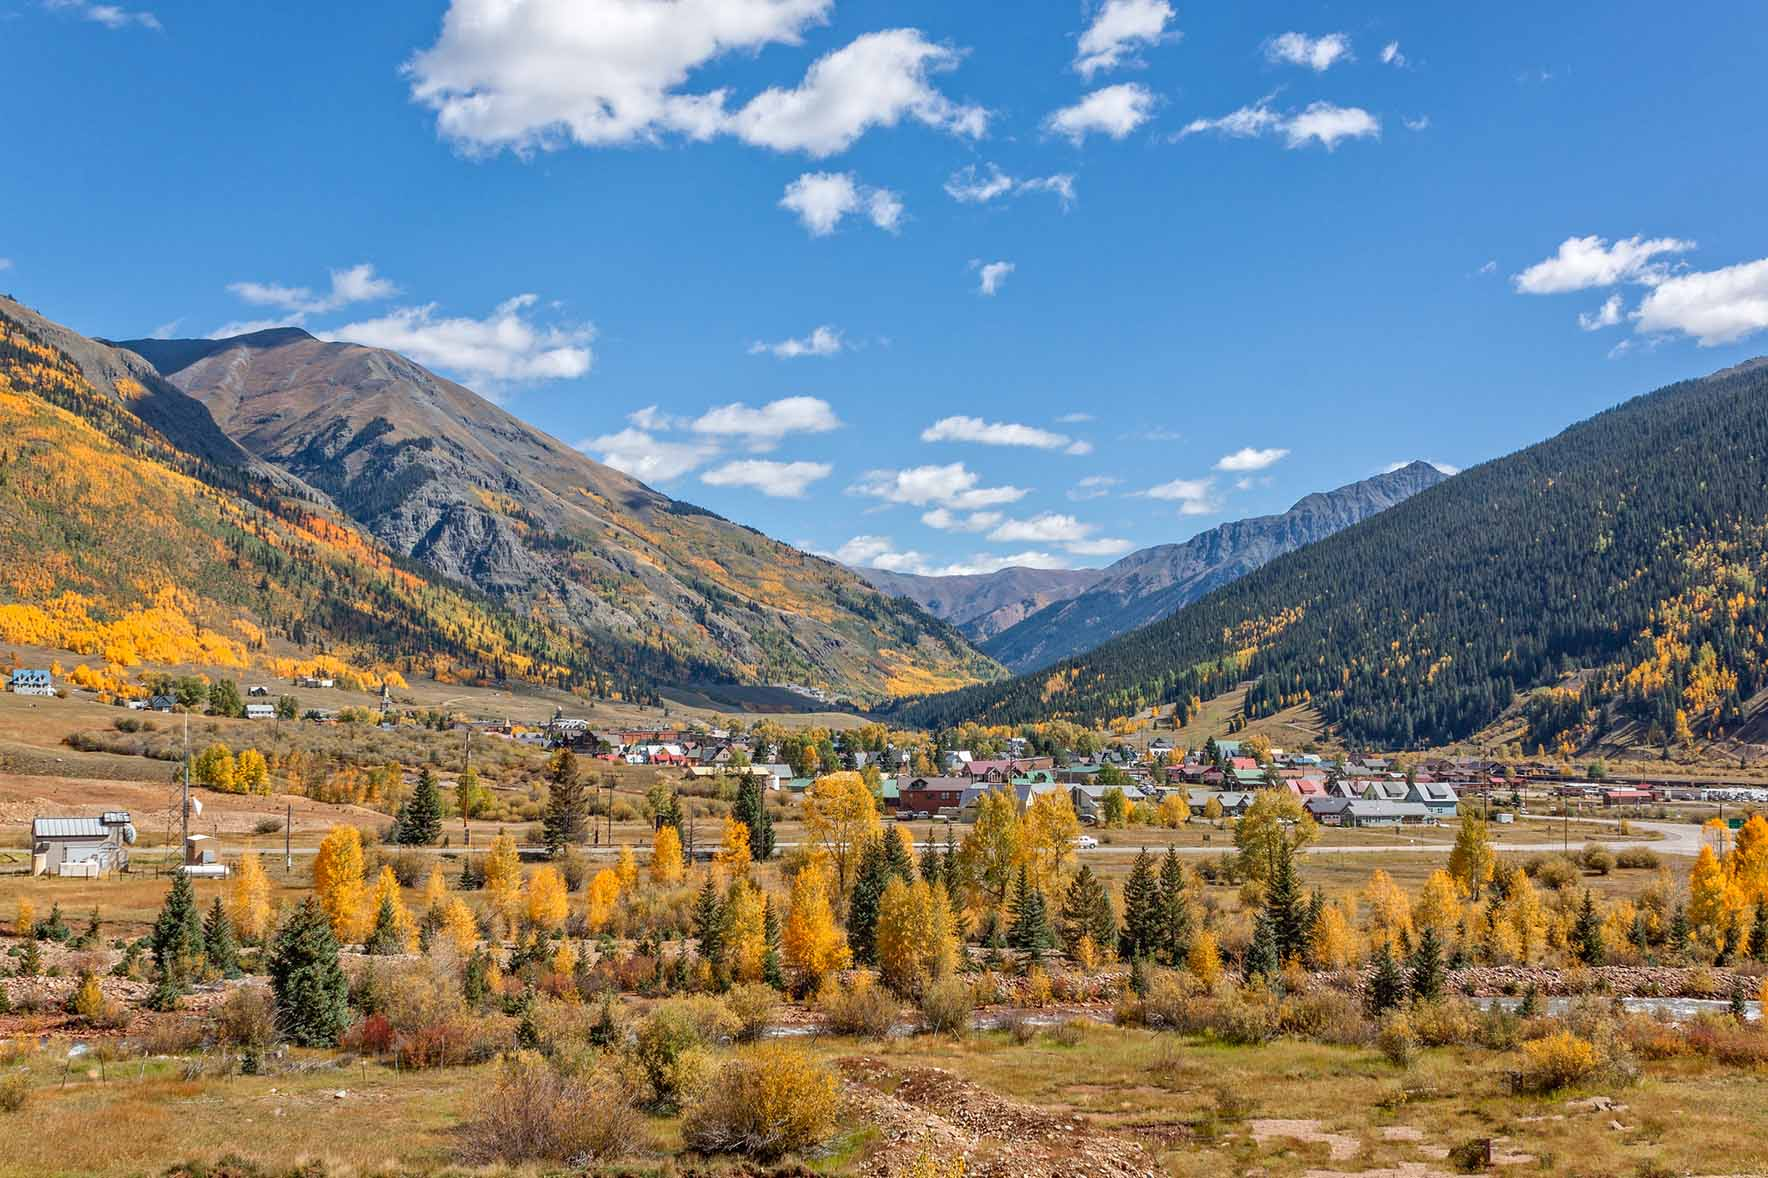 A small town nestled in a fall mountain landscape.